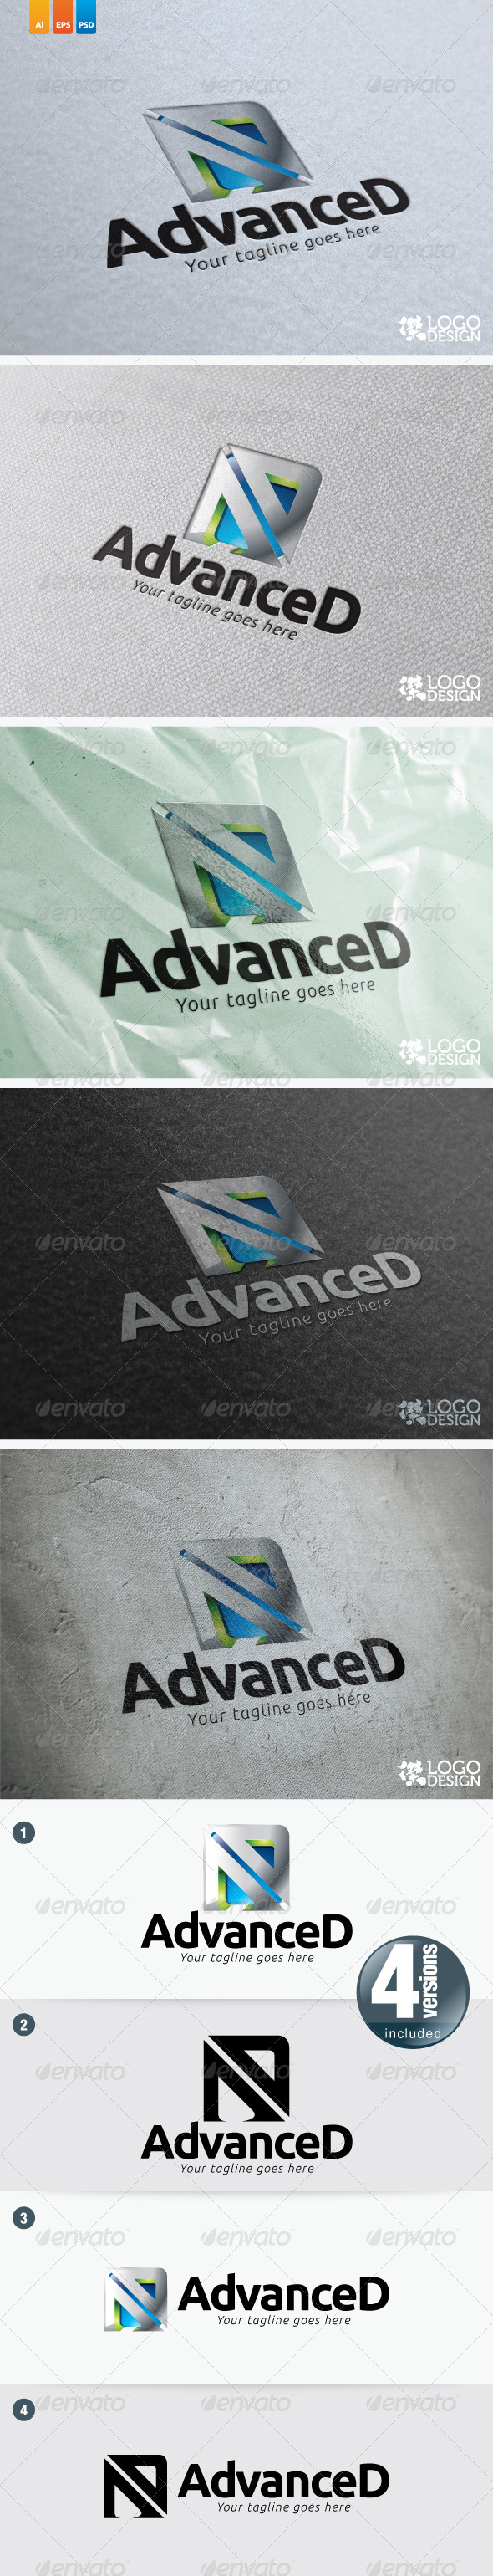 AdvanceD - 3d Abstract